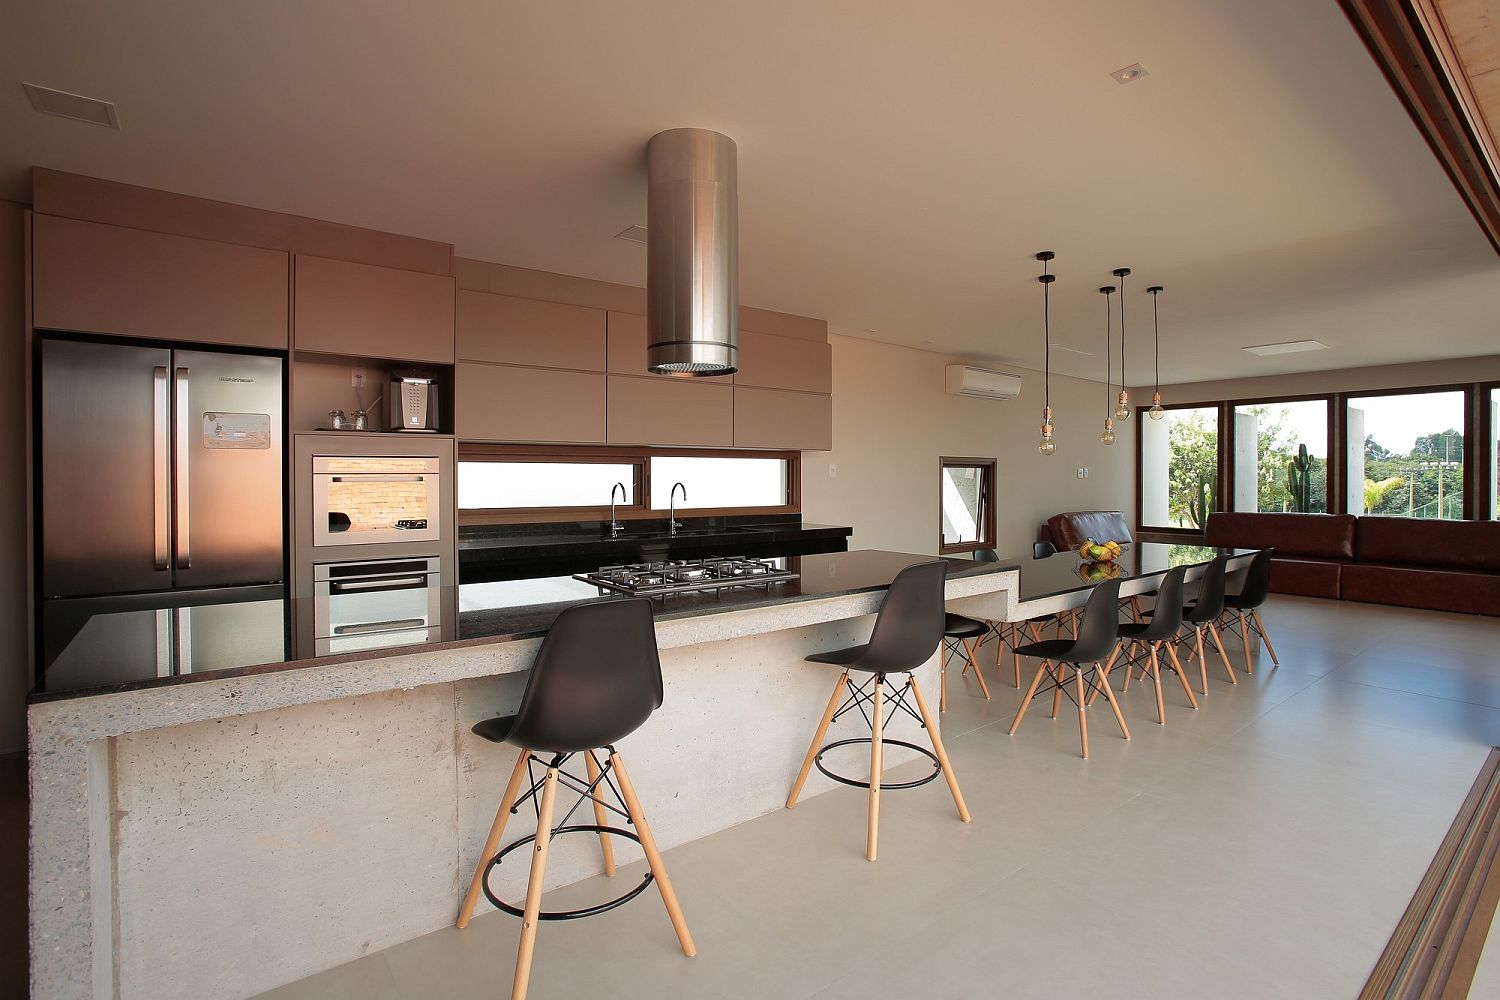 Eames-chairs-and-bar-stools-for-the-kitchen-and-dining